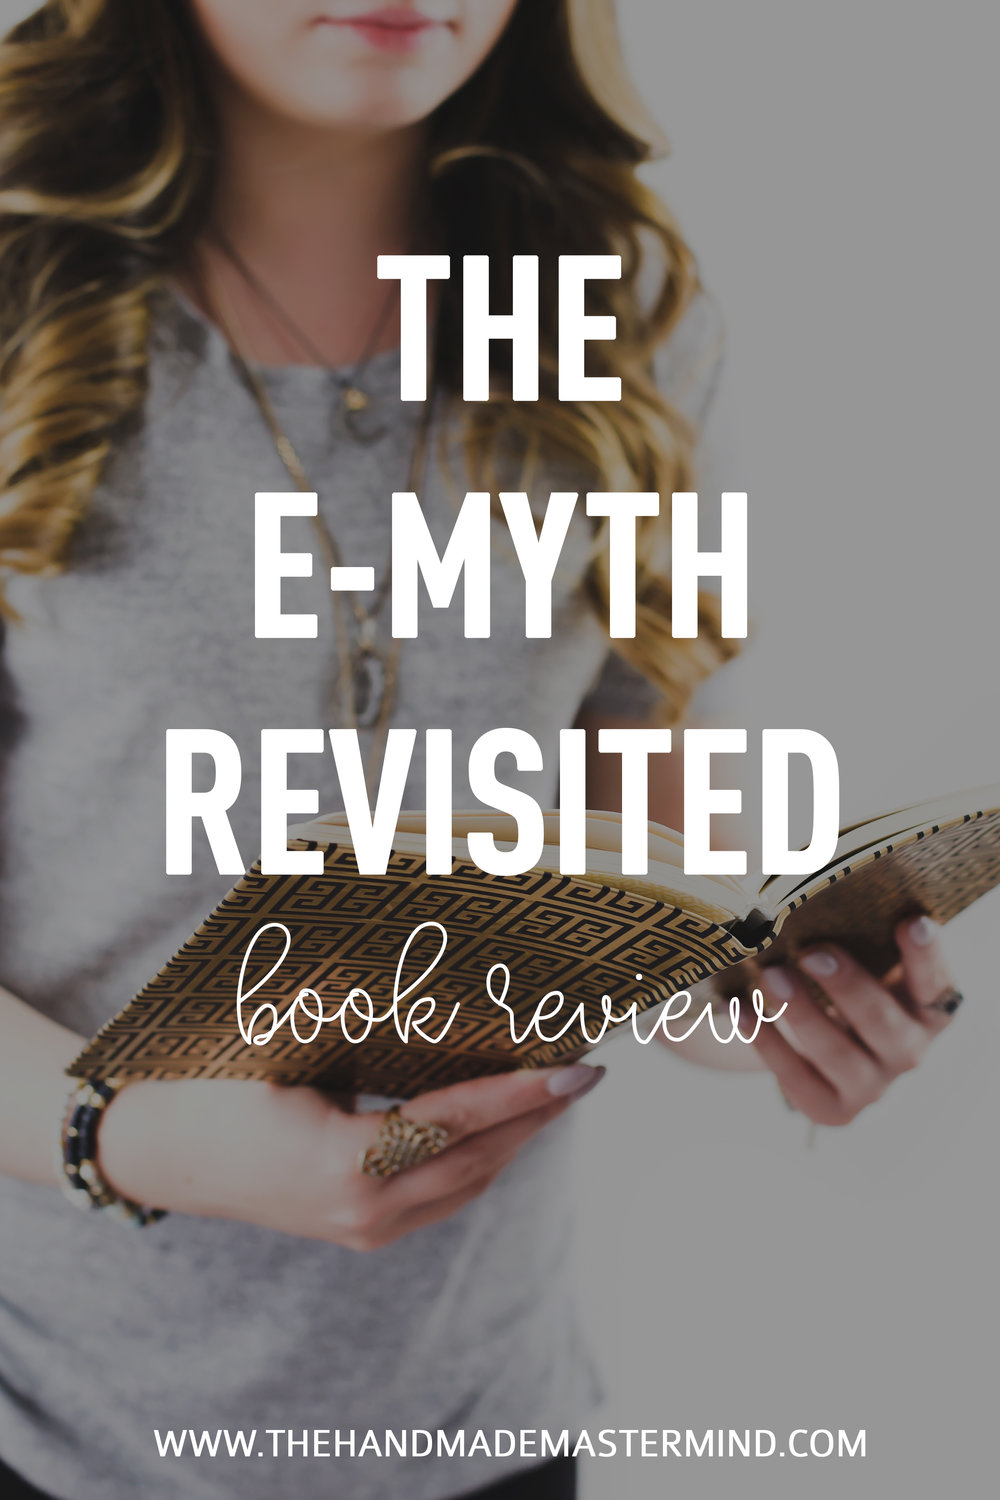 The E-Myth Revisited - Book Review by The Handmade Mastermind